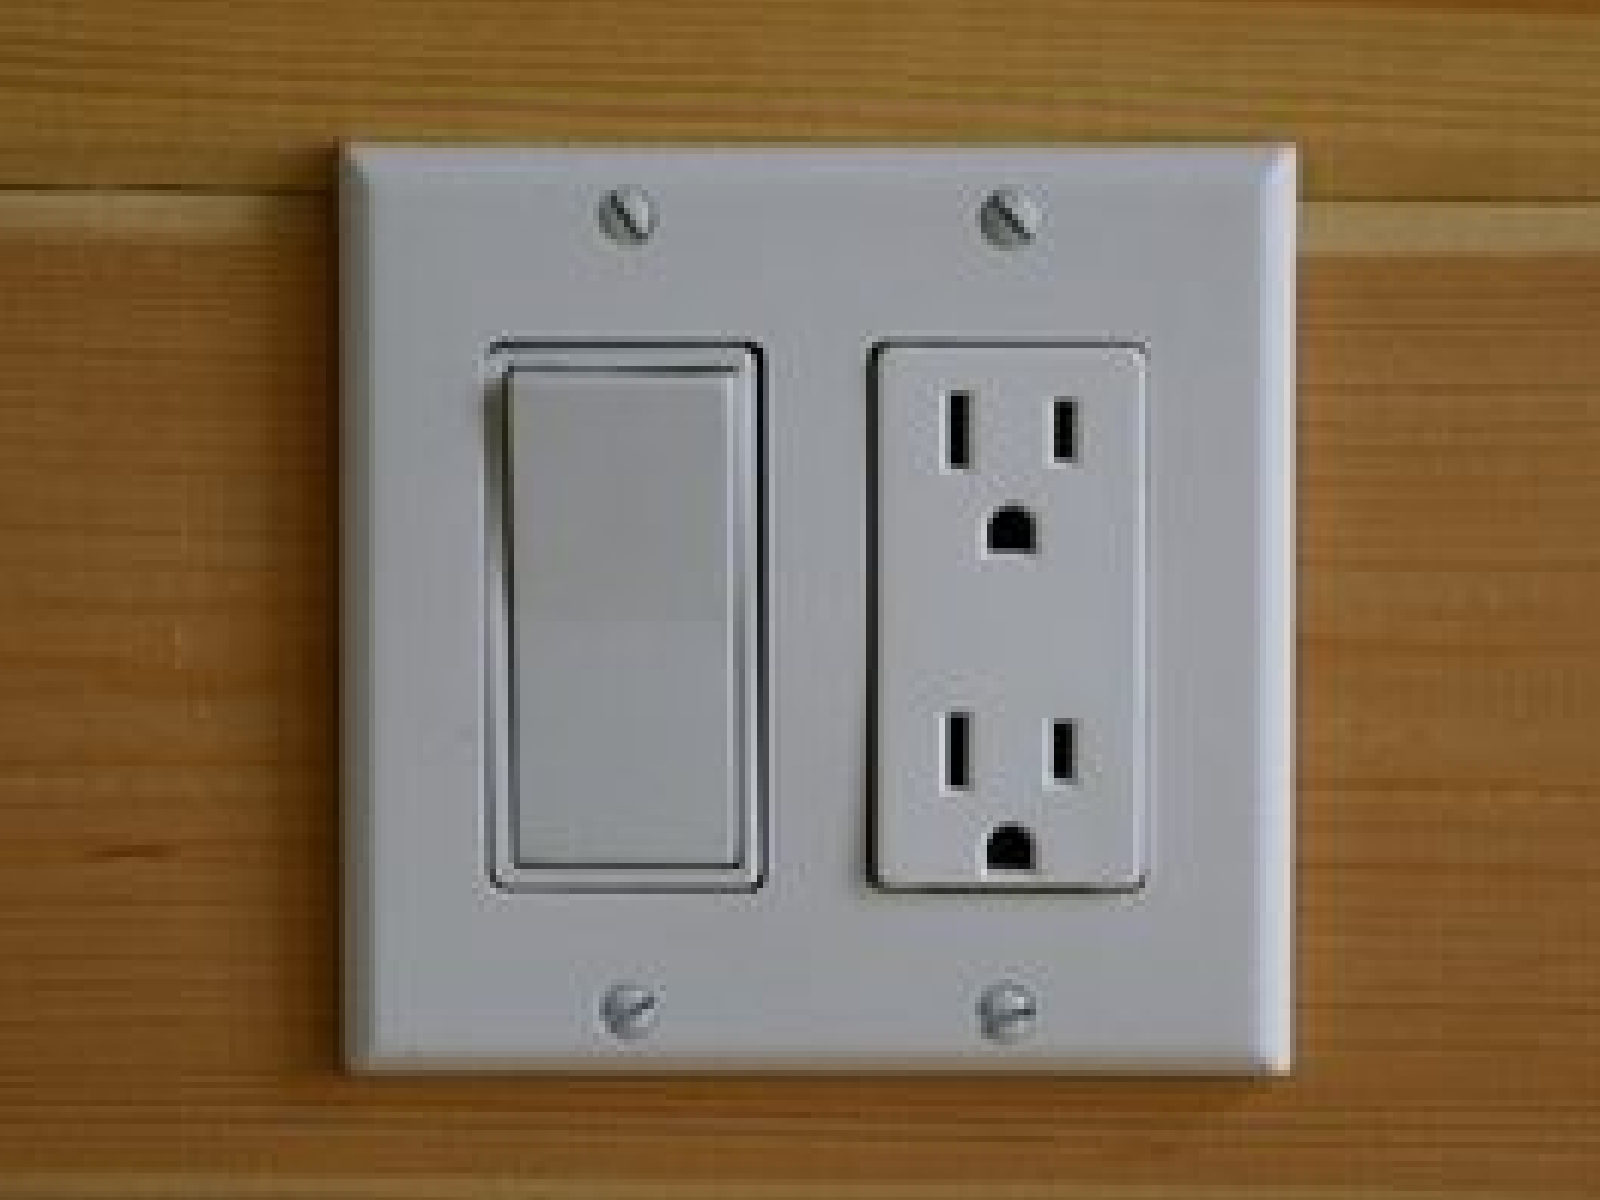 Install/Replace Light Switch